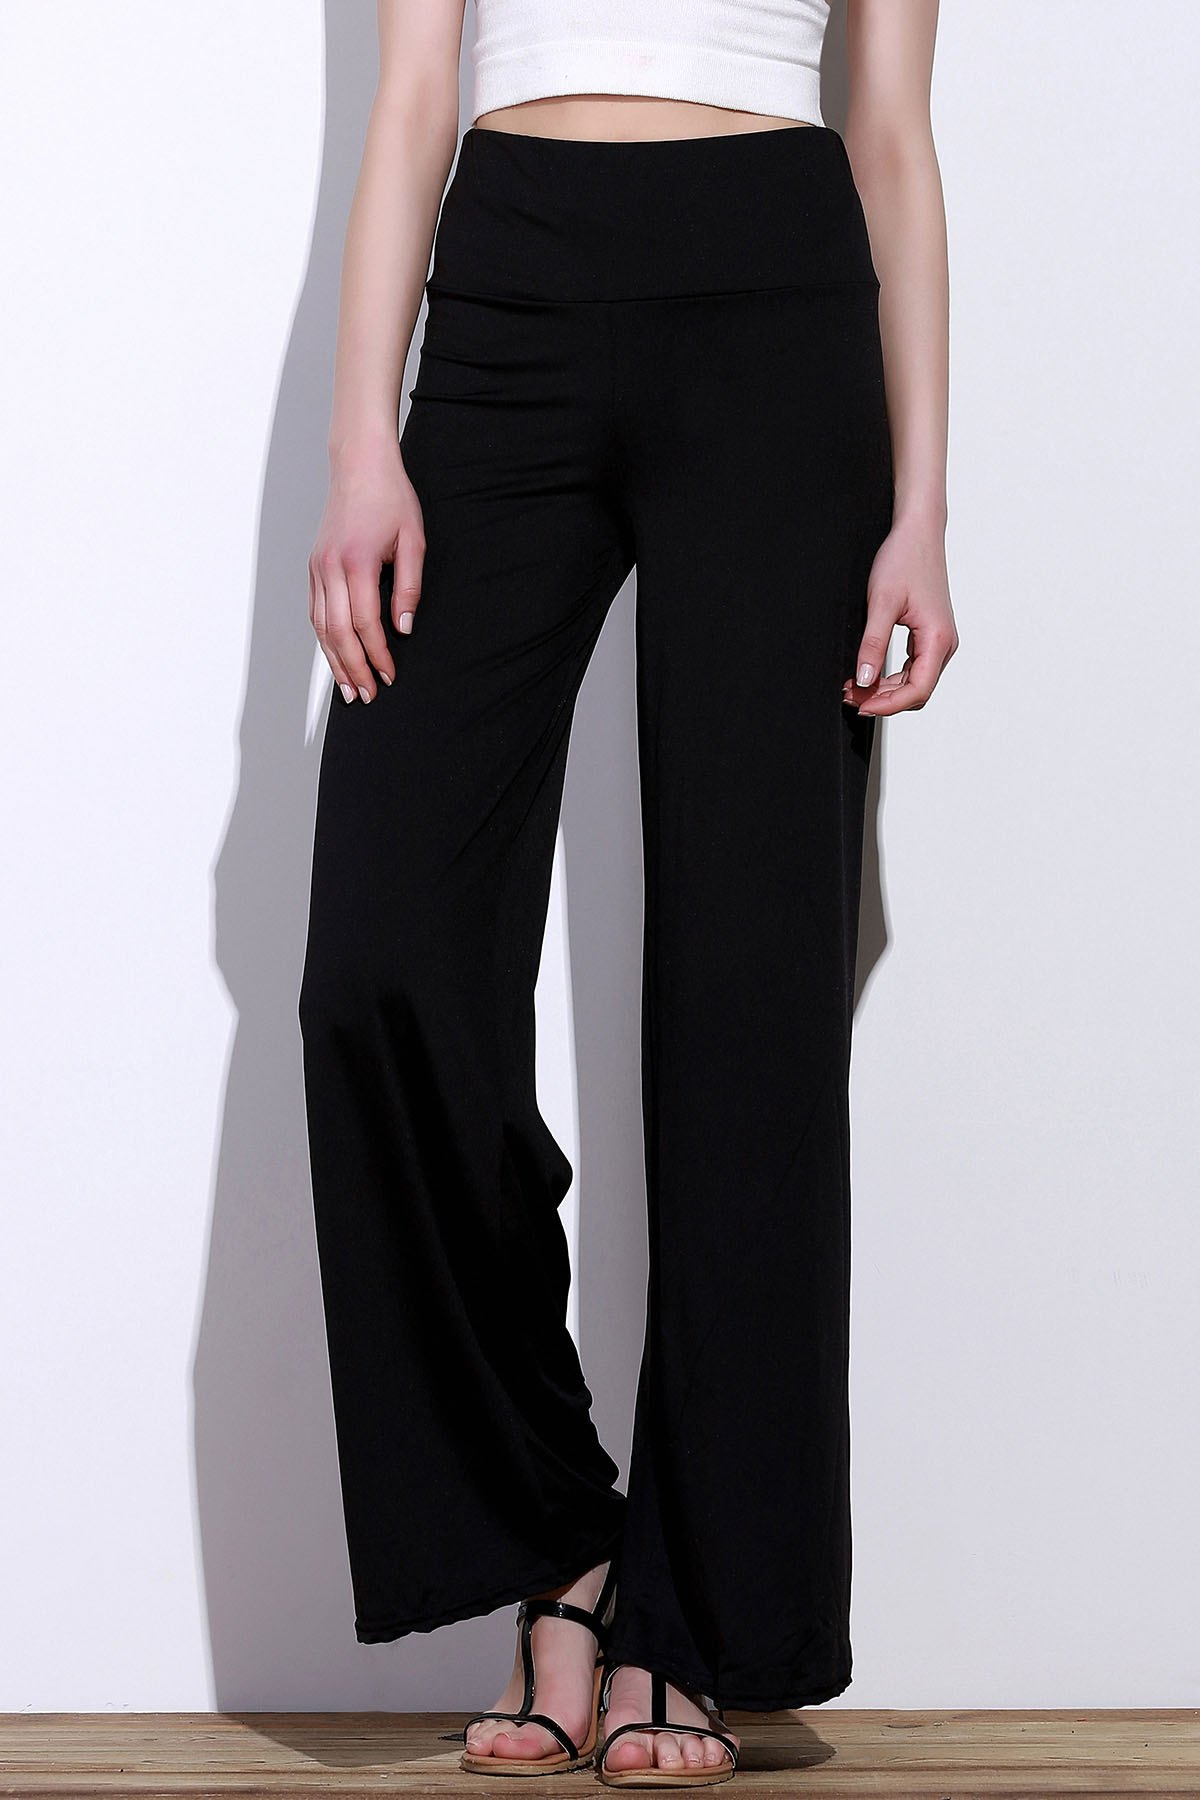 Casual Women's Solid Color Loose-Fitting Pants